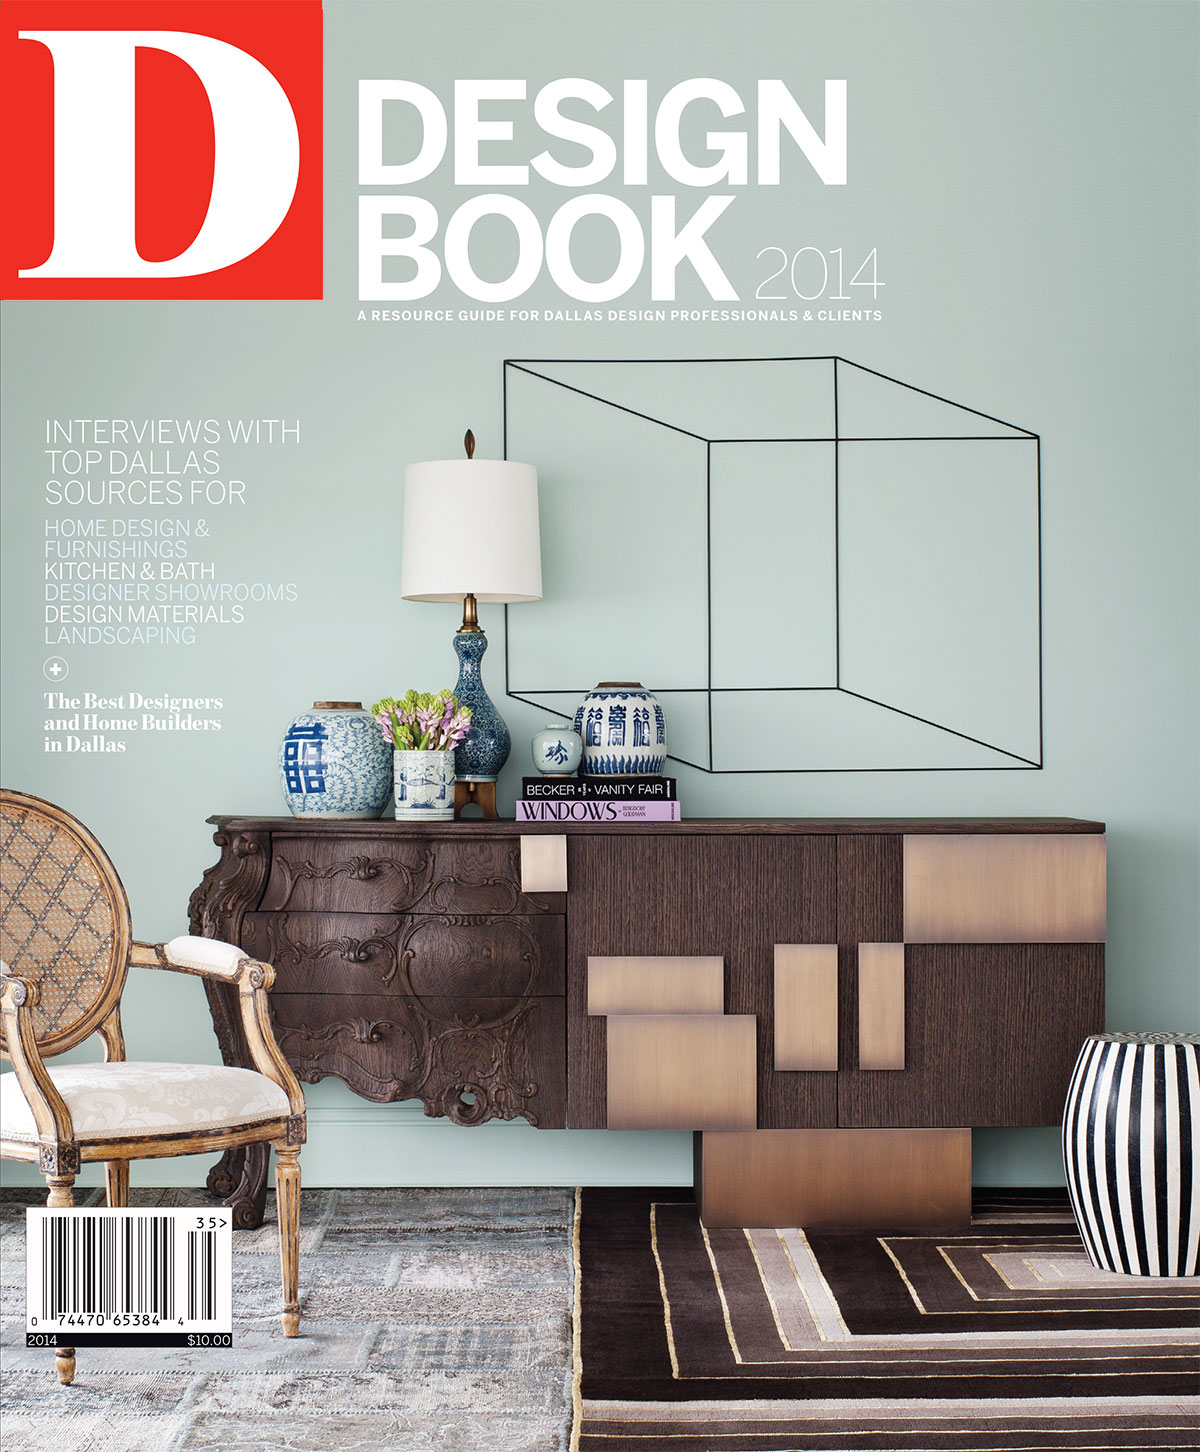 Design Book 2014 cover